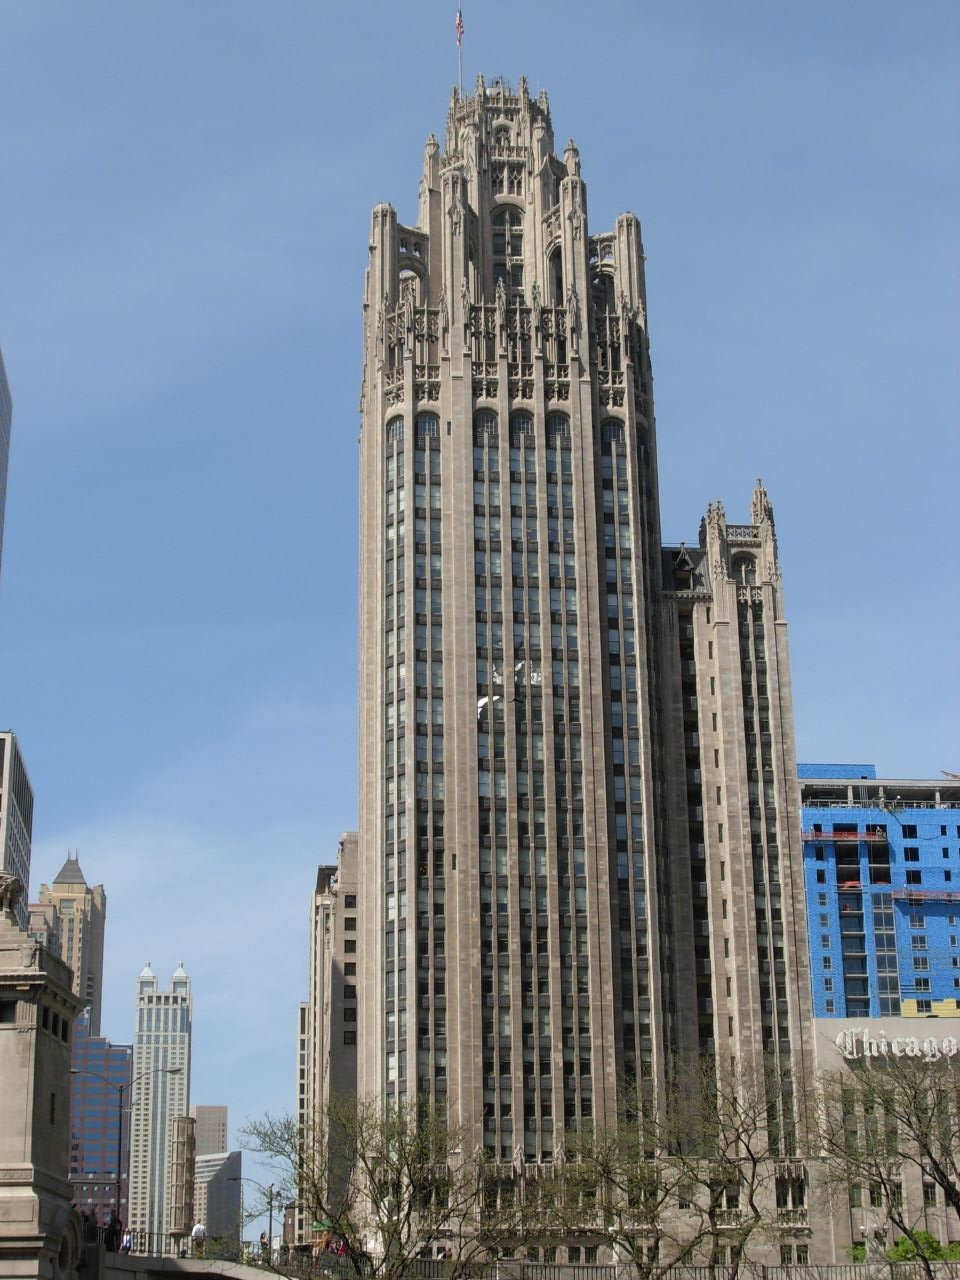 The Tribune Tower on Michigan Ave.